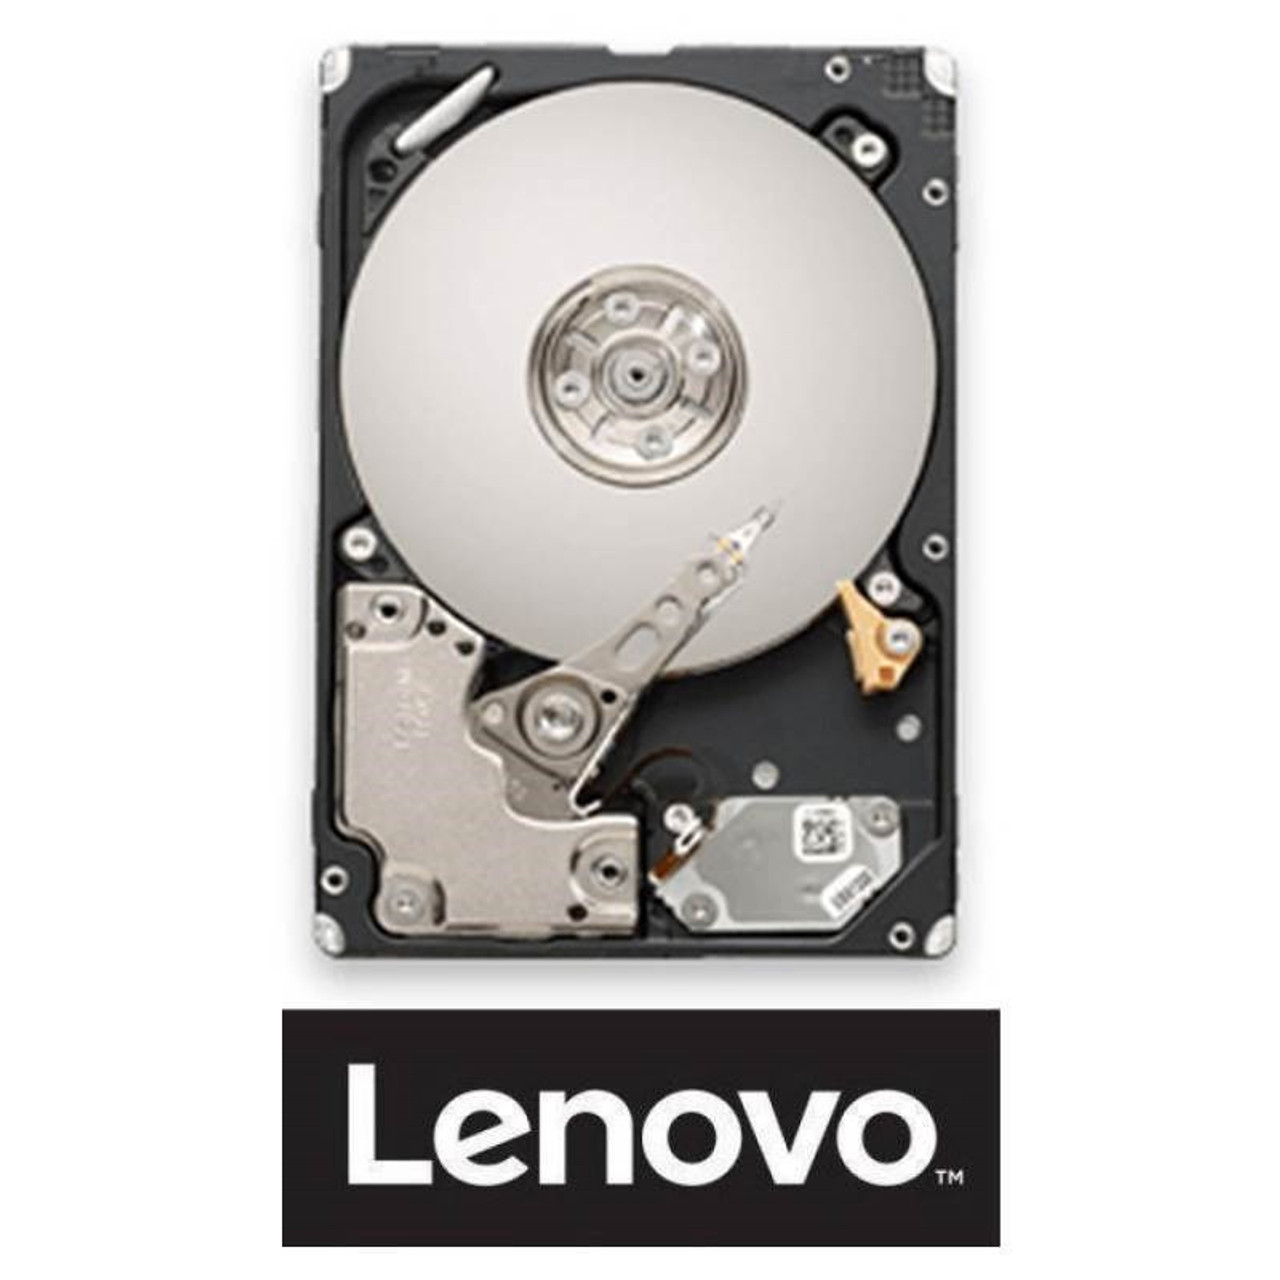 Image for Lenovo ThinkSystem 2.5in 1.8TB 10K SAS 12Gb/s Hot-swap 512E Server Hard Drive CX Computer Superstore